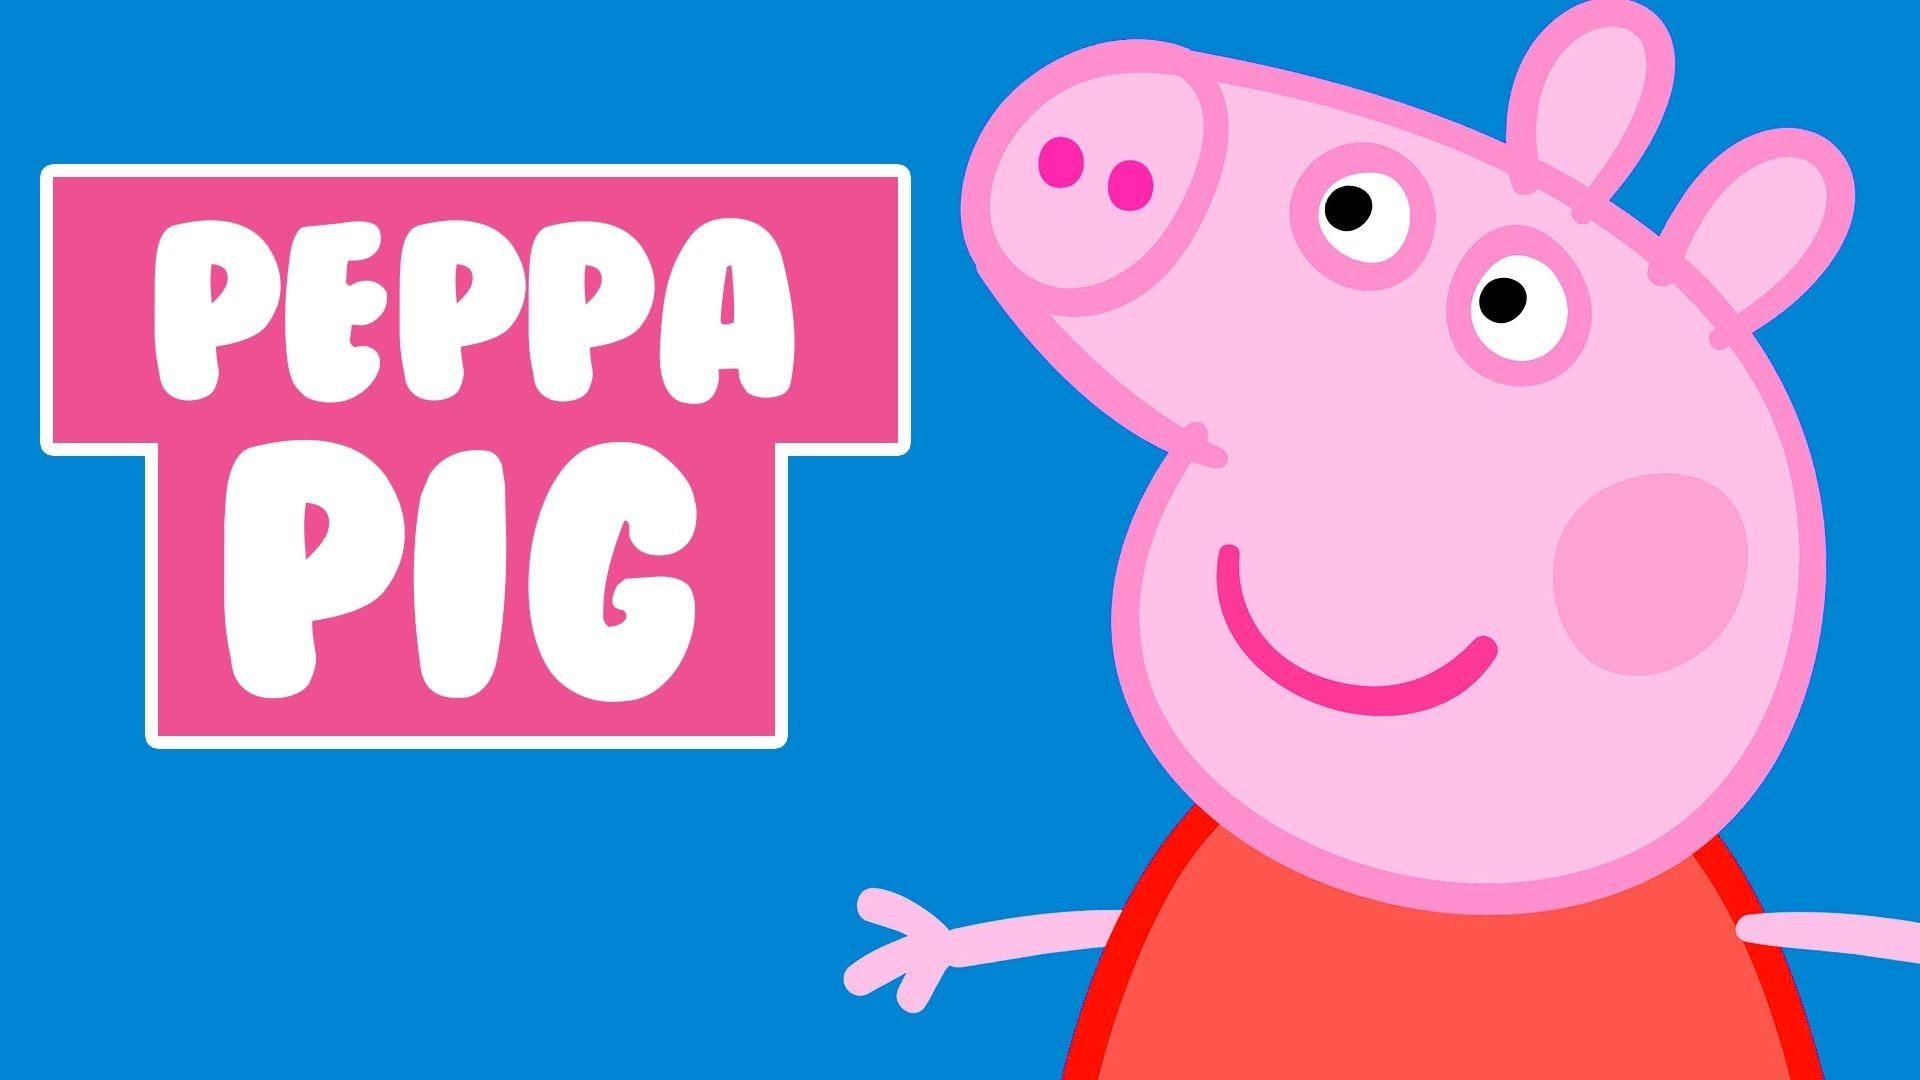 Peppa Pig Funny Games inspired by Peppa Pig Cartoon Full Episodes .